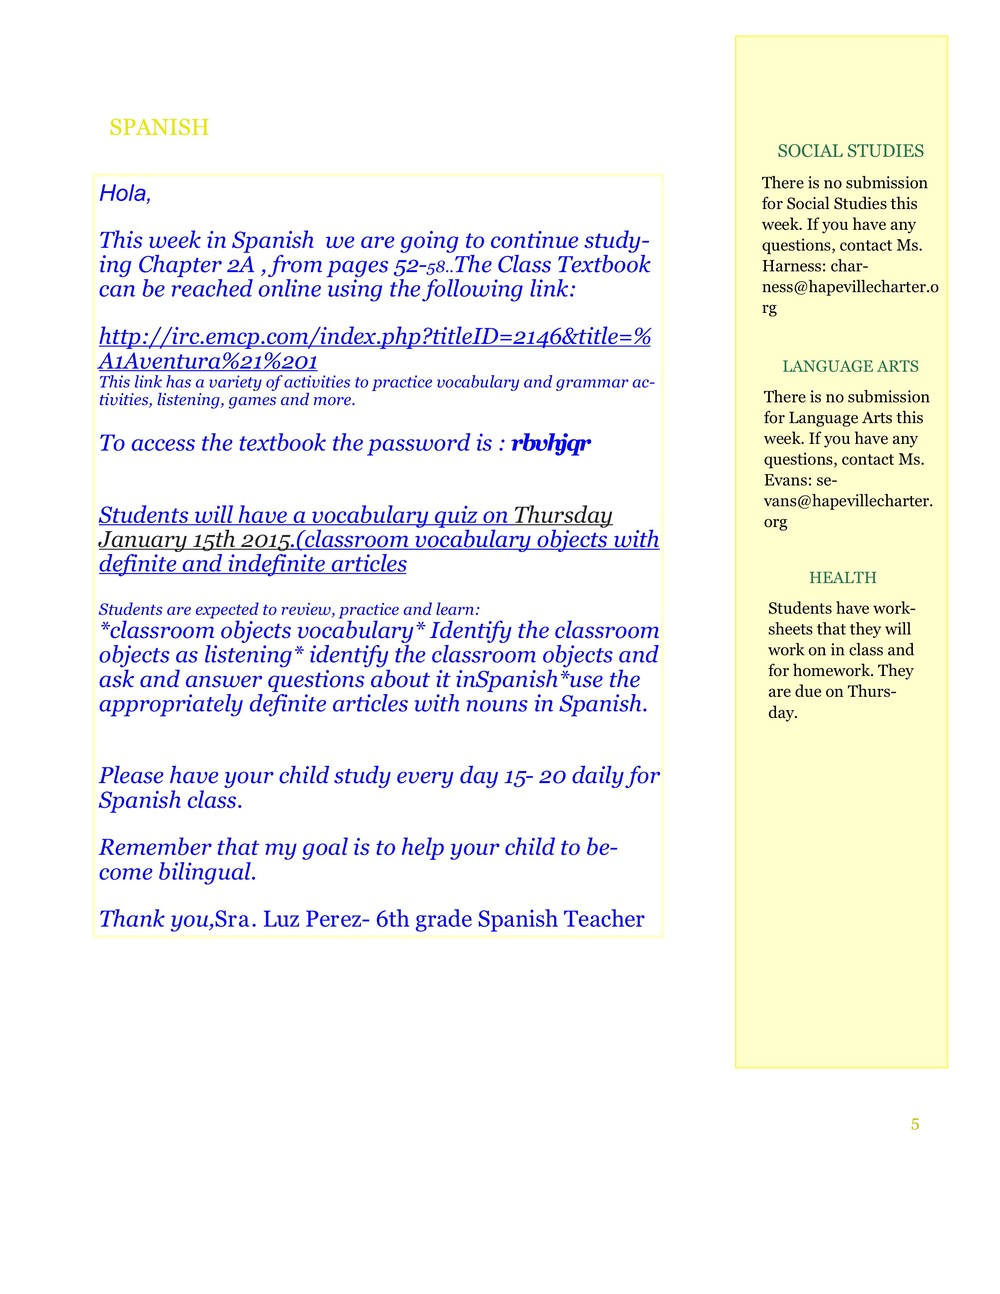 Newsletter Image6th grade January 12-16 5.jpeg